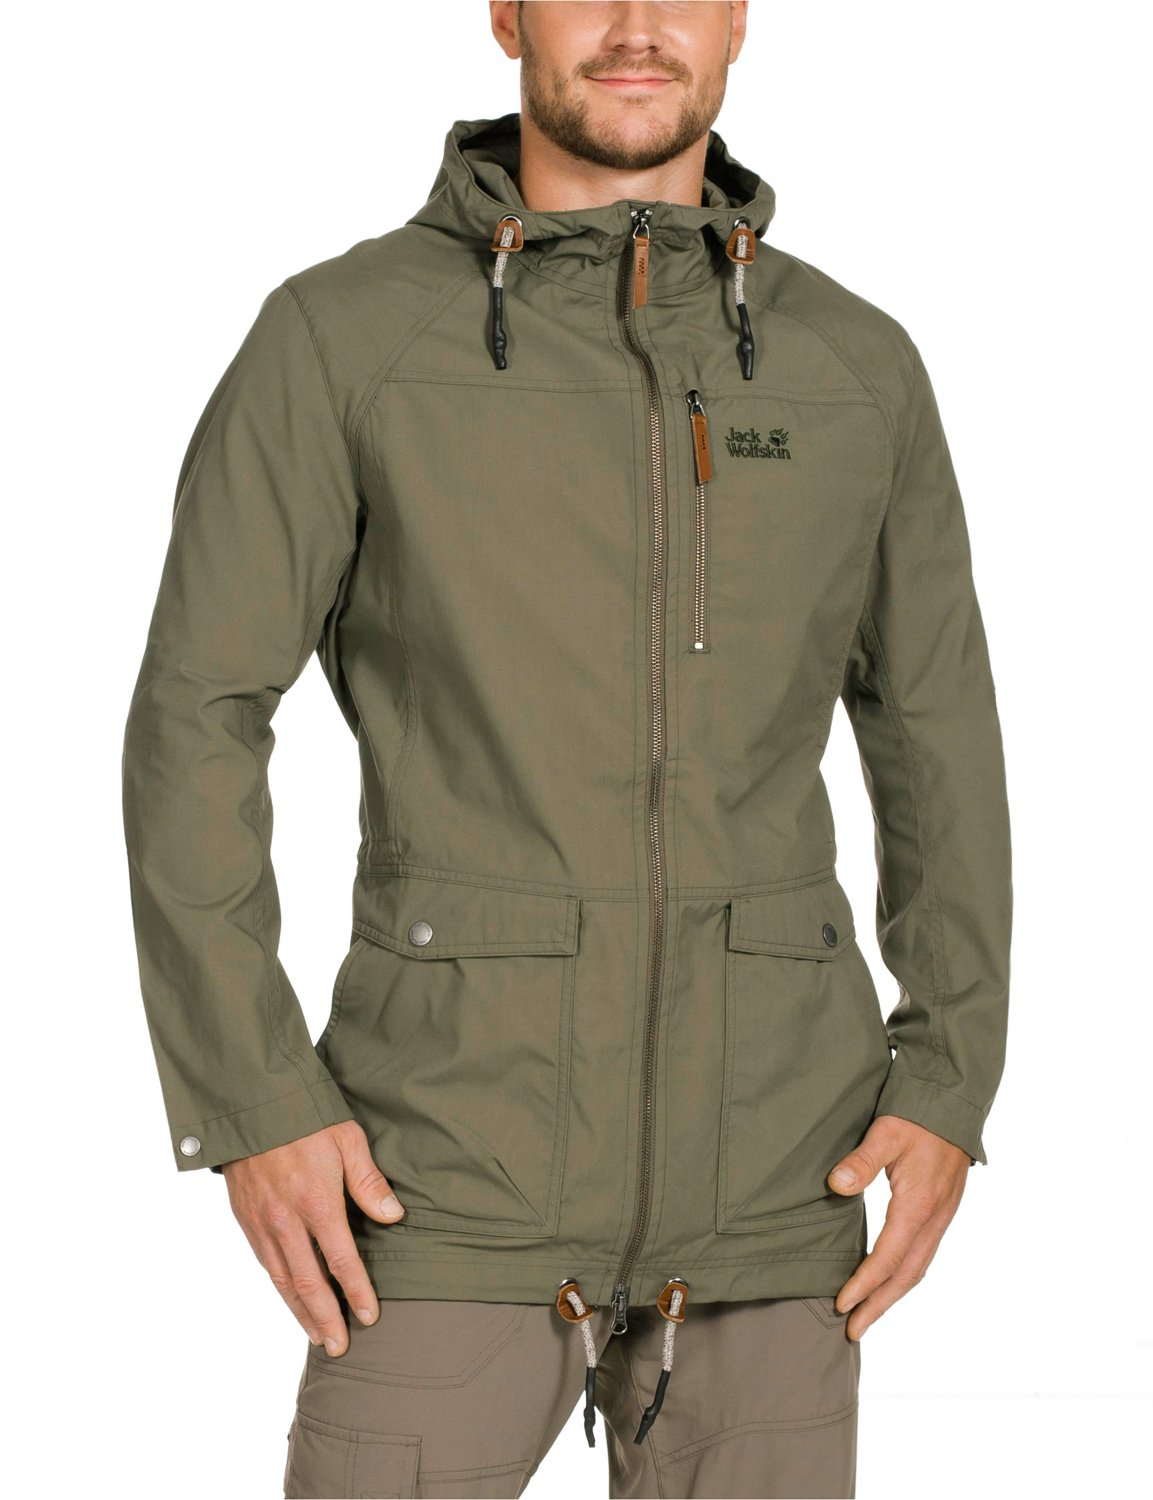 Jack Wolfskin Water Repellent Herren Men's Outdoor Parka Jacket: Jack  Wolfskin: Amazon.co.uk: Sports & Outdoors